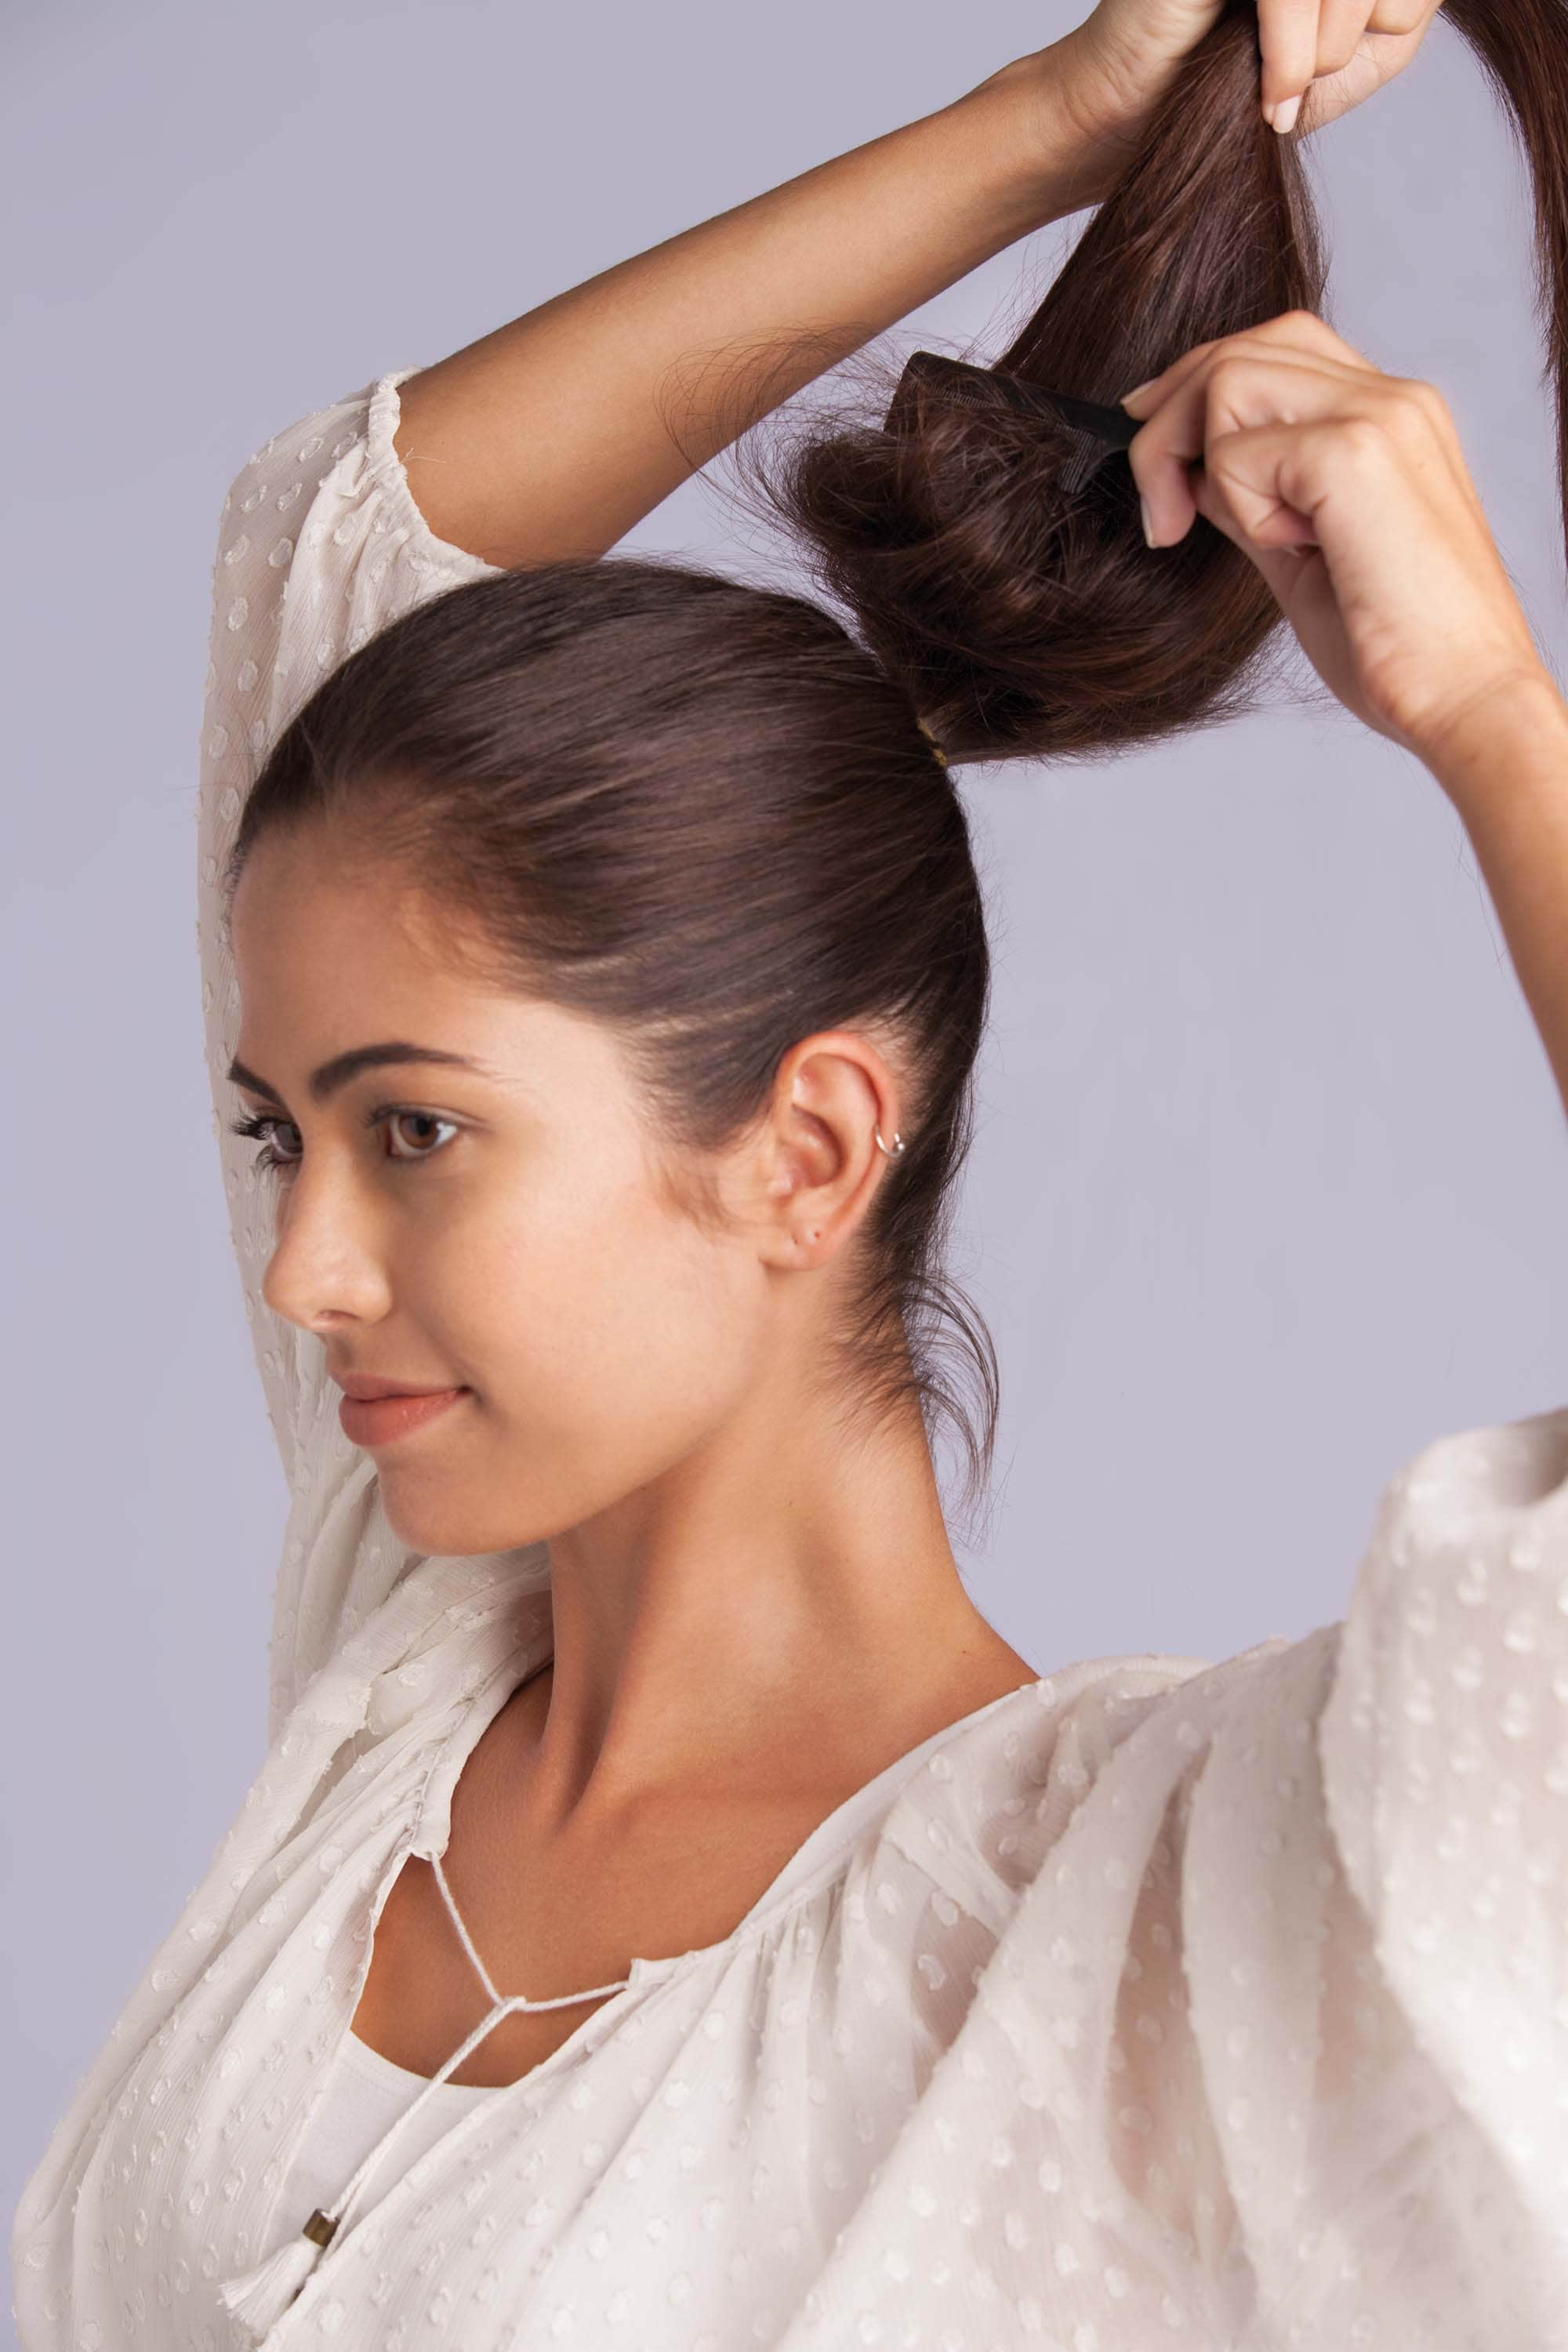 a woman combing her ponytail to make volume